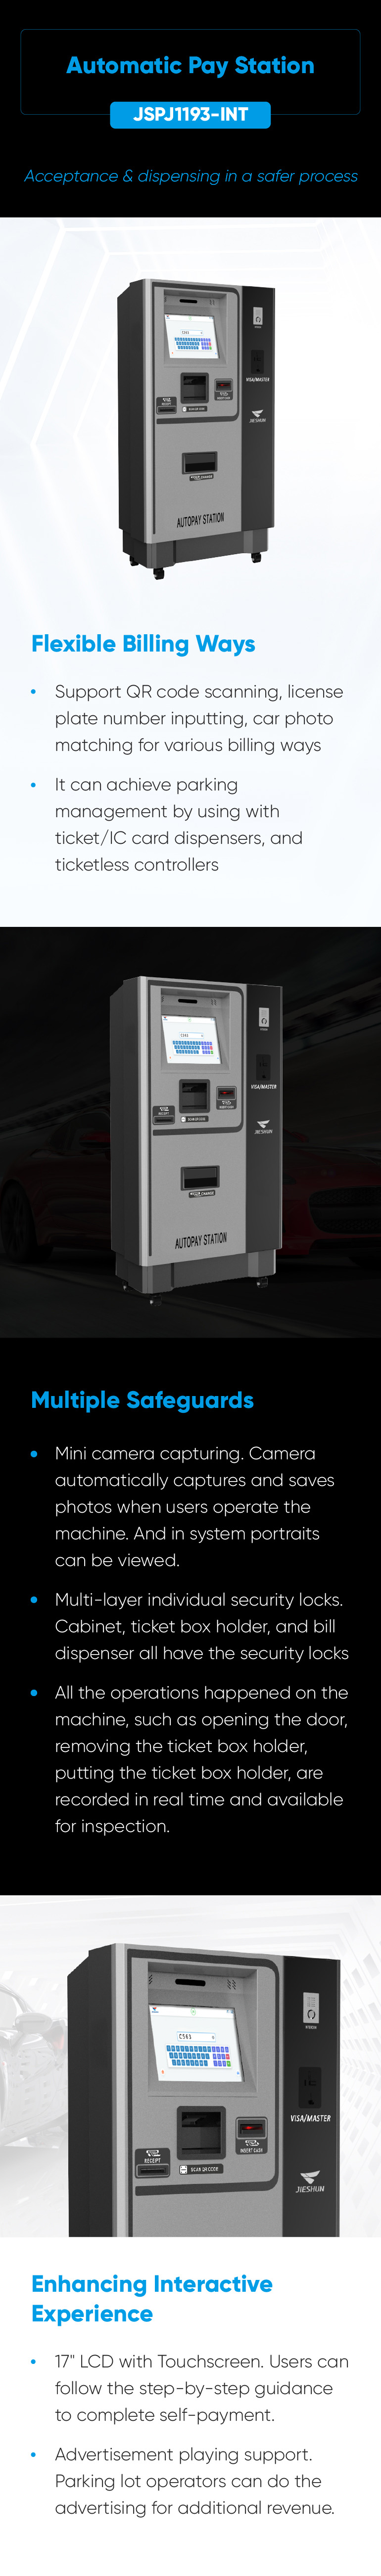 Automatic Pay Station.jpg